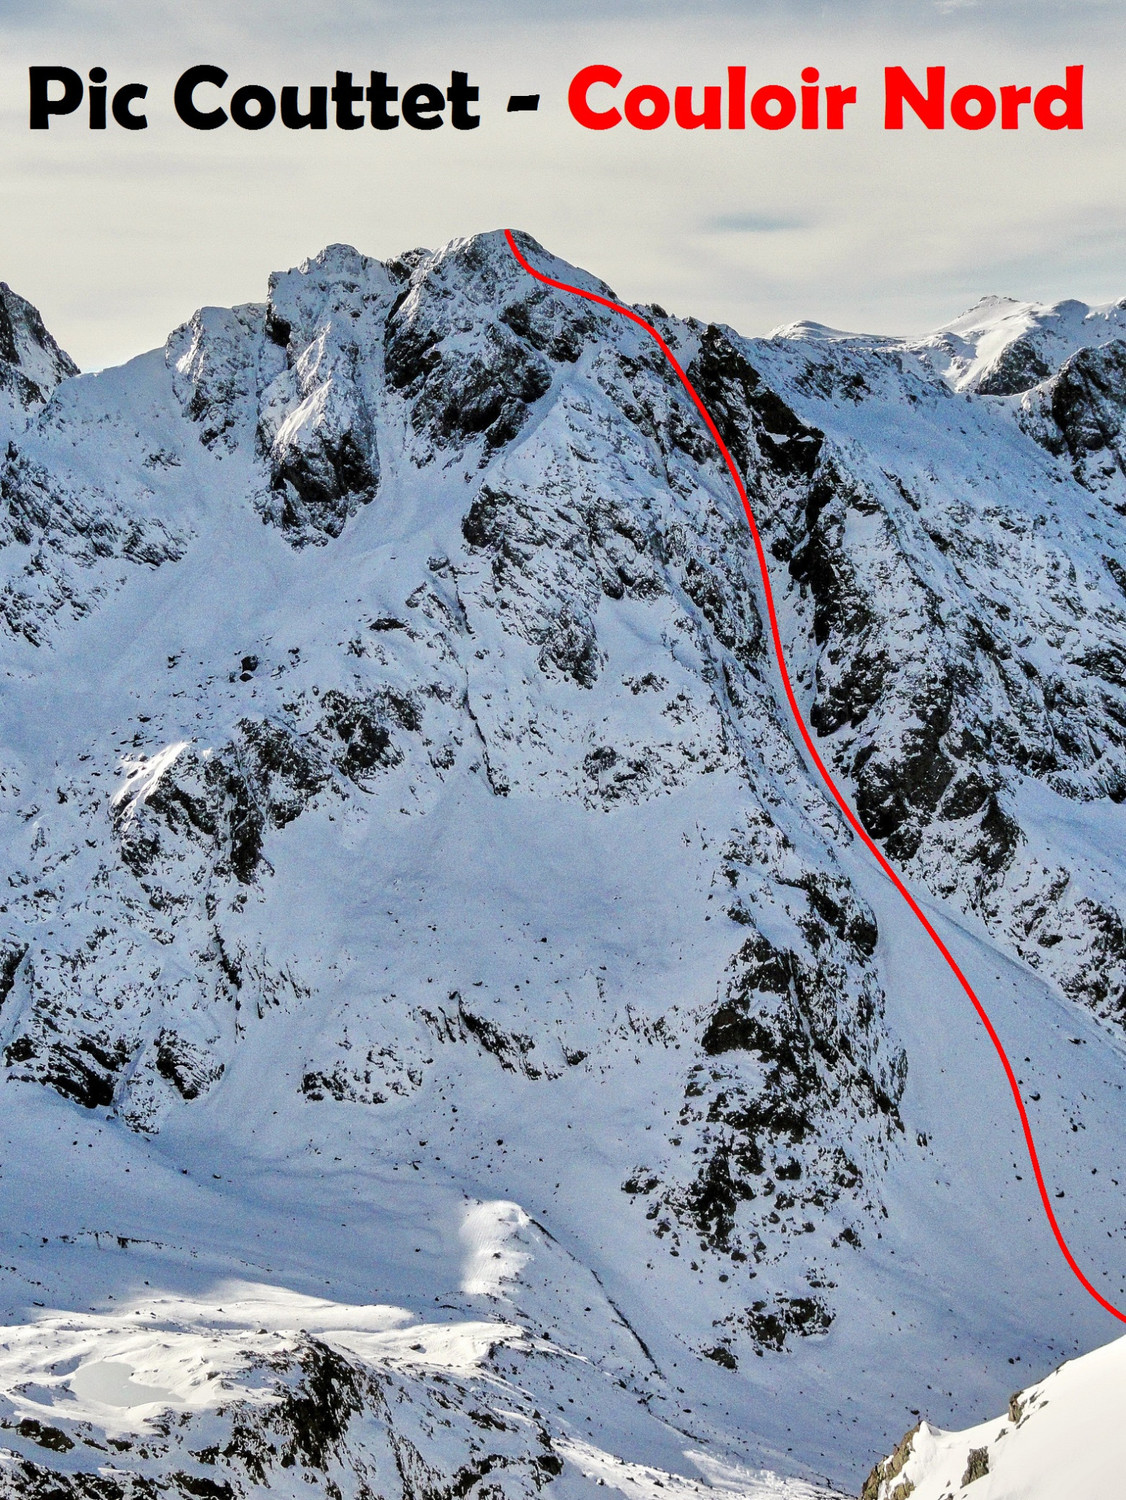 Pic Couttet - Couloir Nord